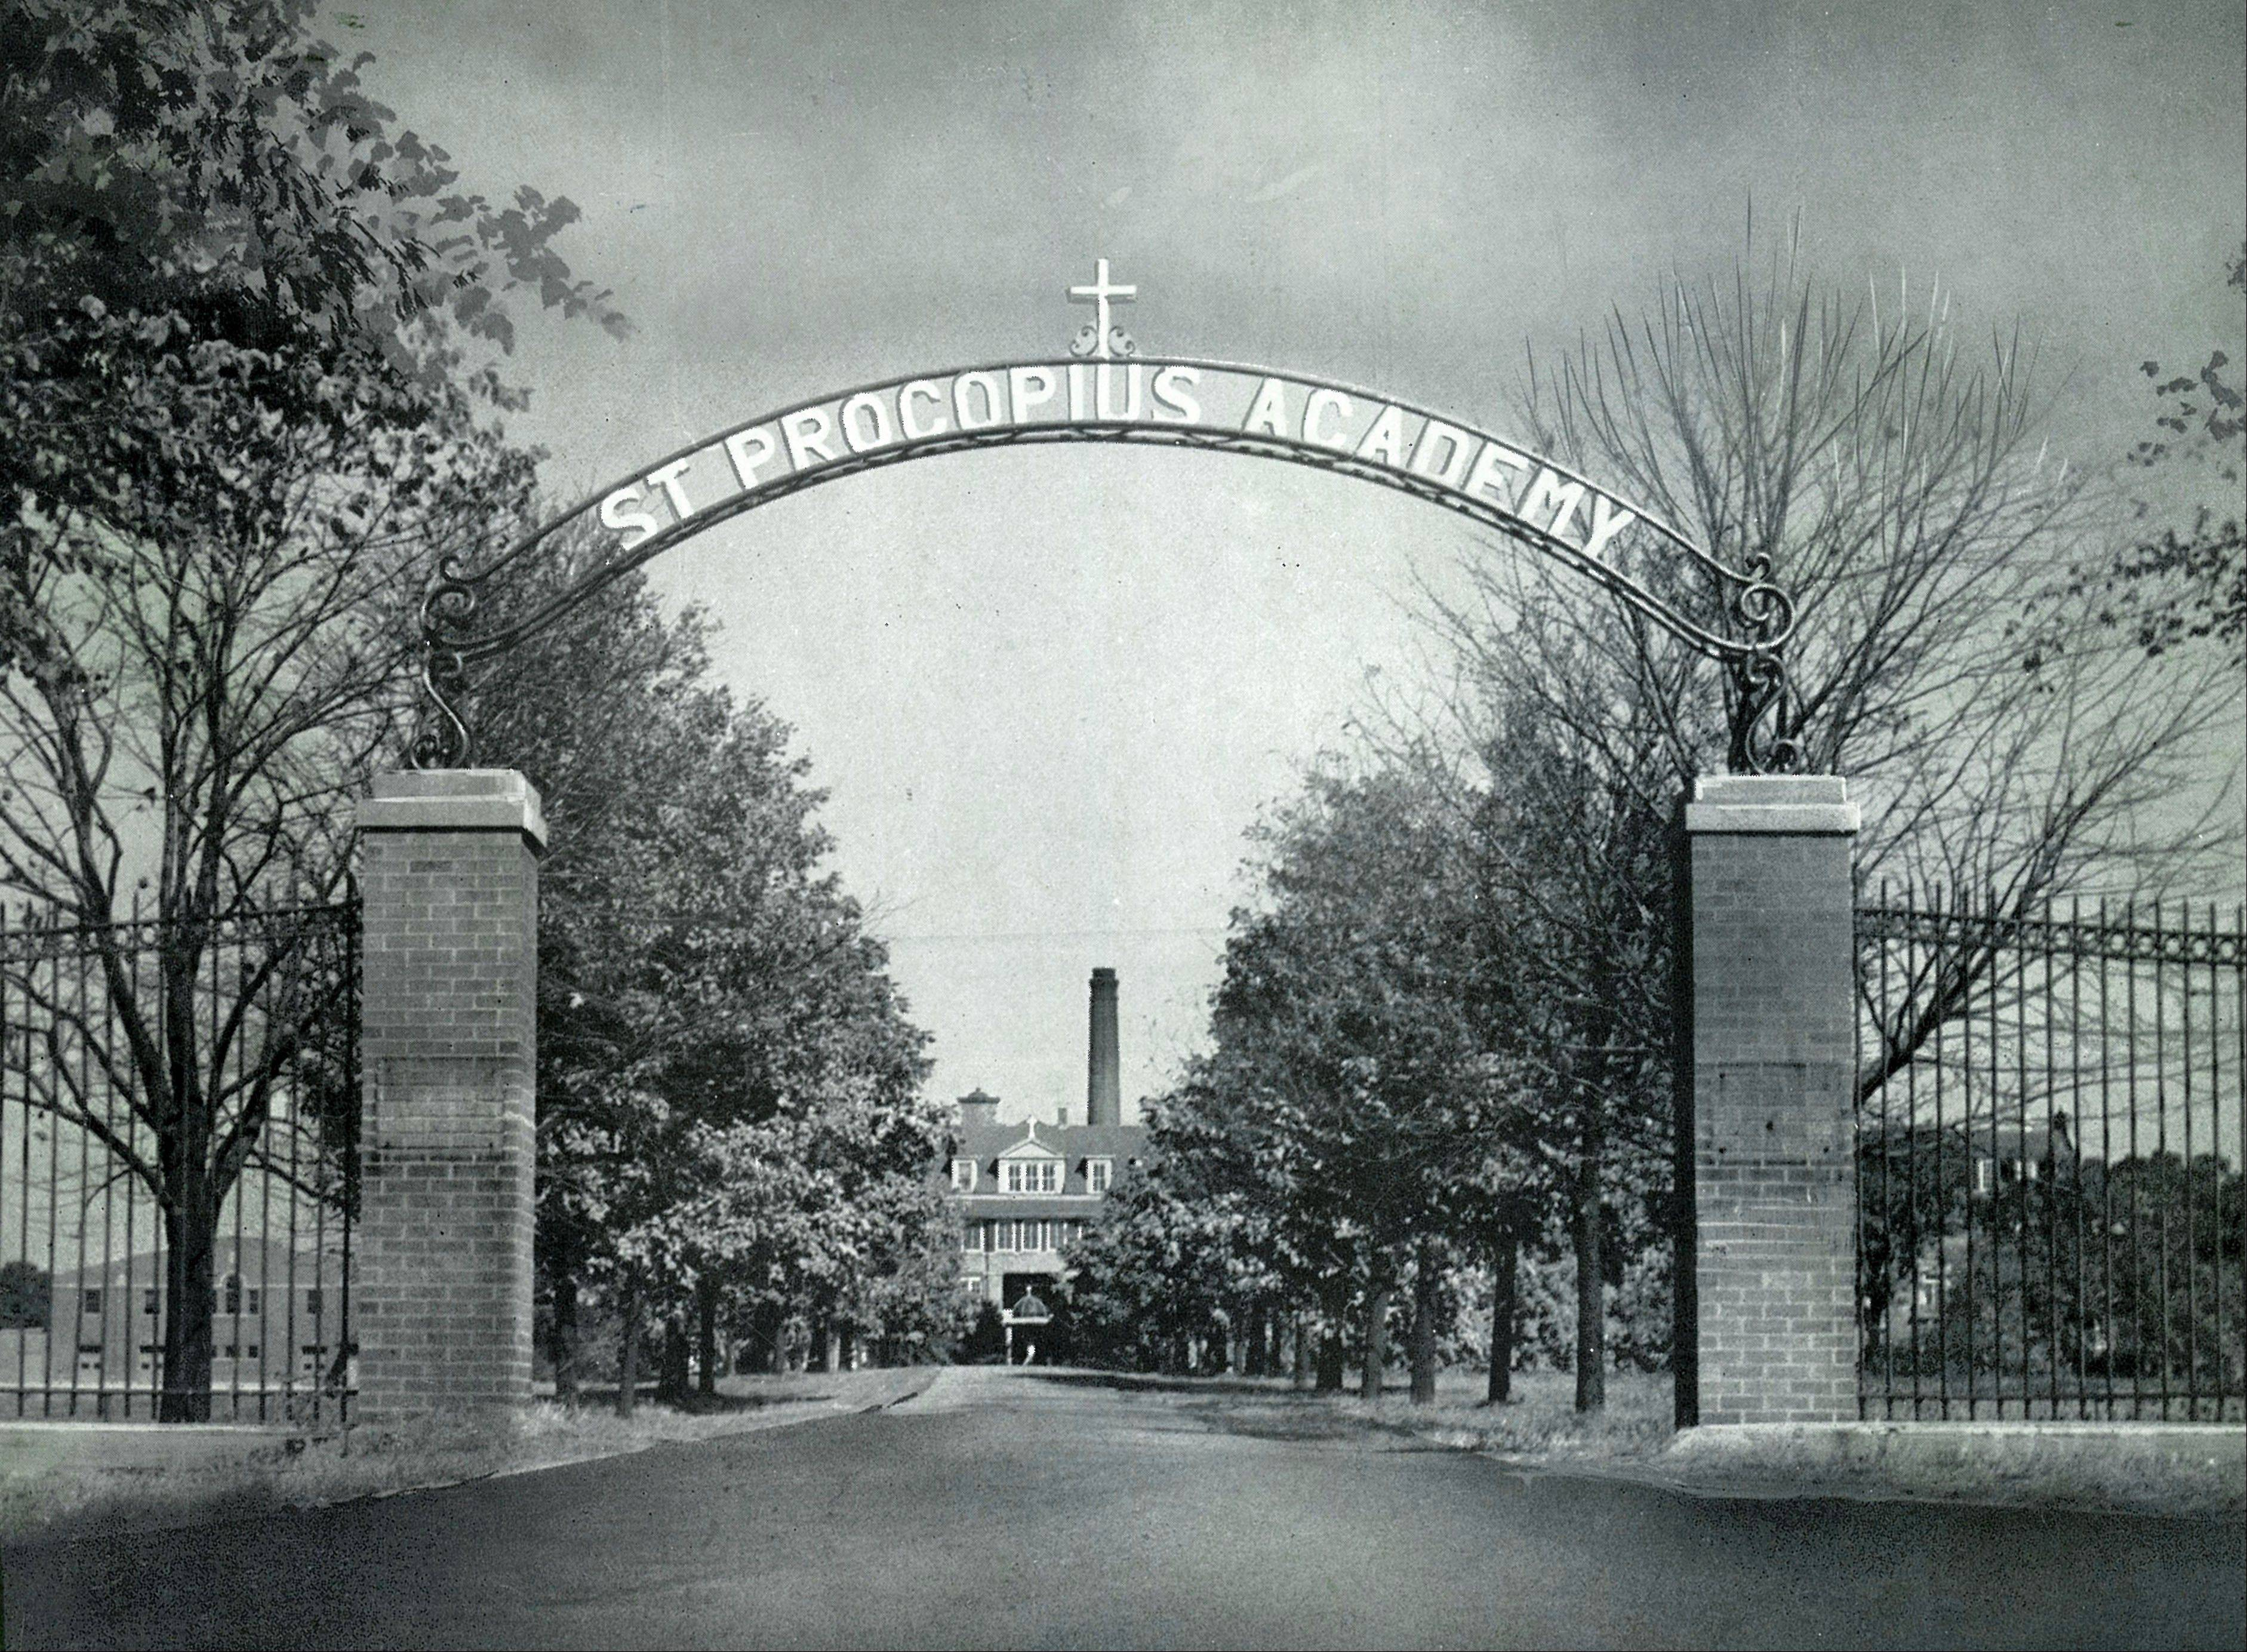 This is the main entrance to the all-male St. Procopius Academy, later renamed Benet Academy when it opened to the female students of Sacred Heart Academy.